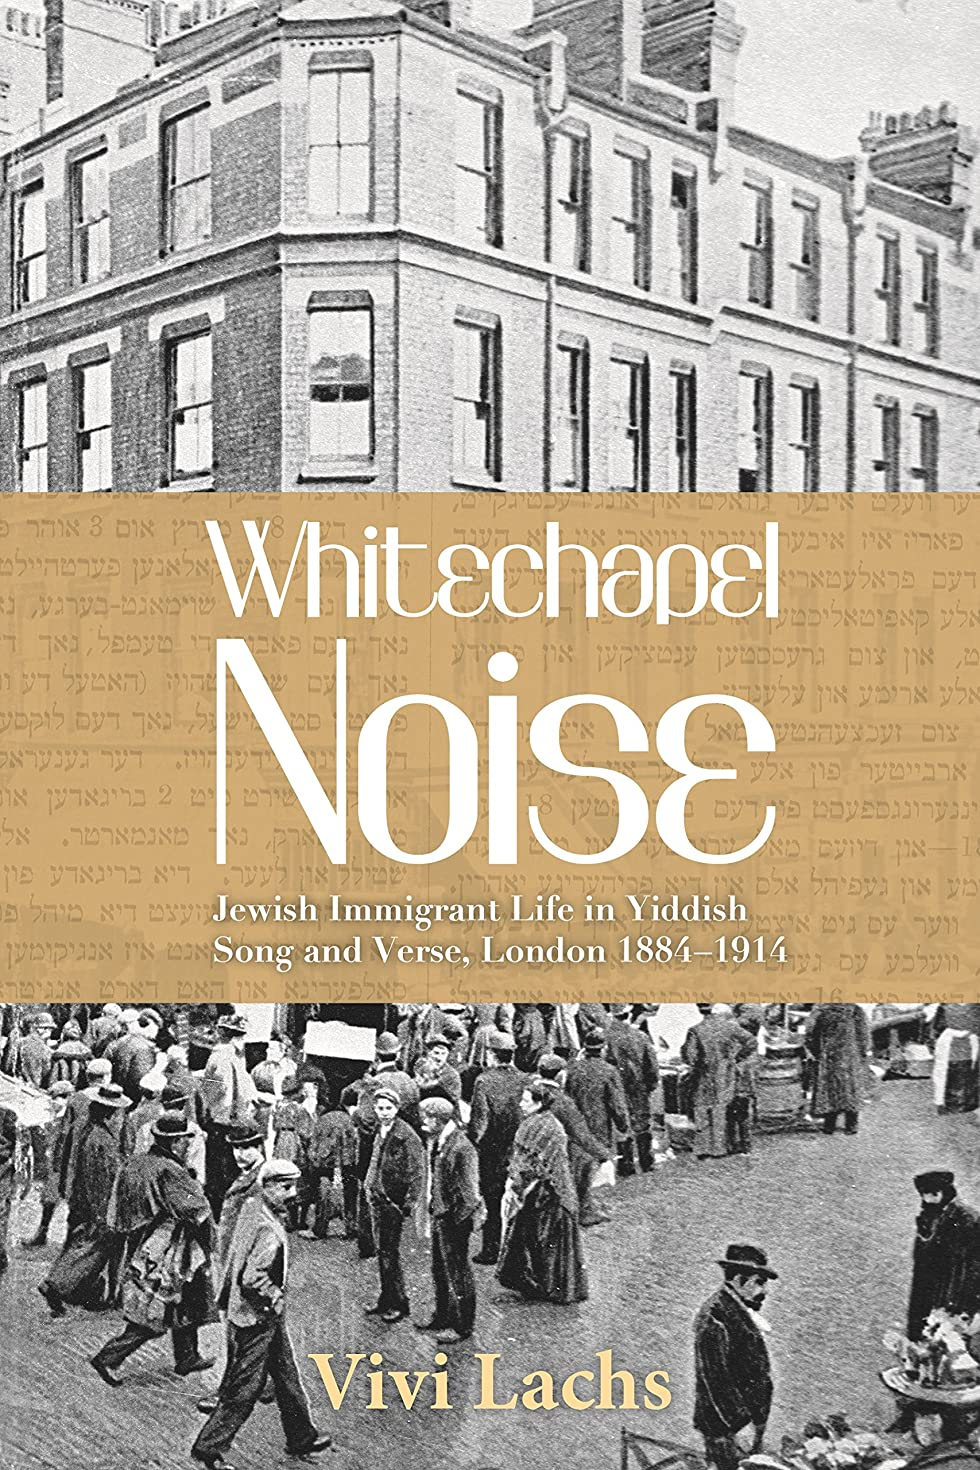 Whitechapel Noise: Jewish Immigrant Life in Yiddish Song and Verse, London 1884–1914